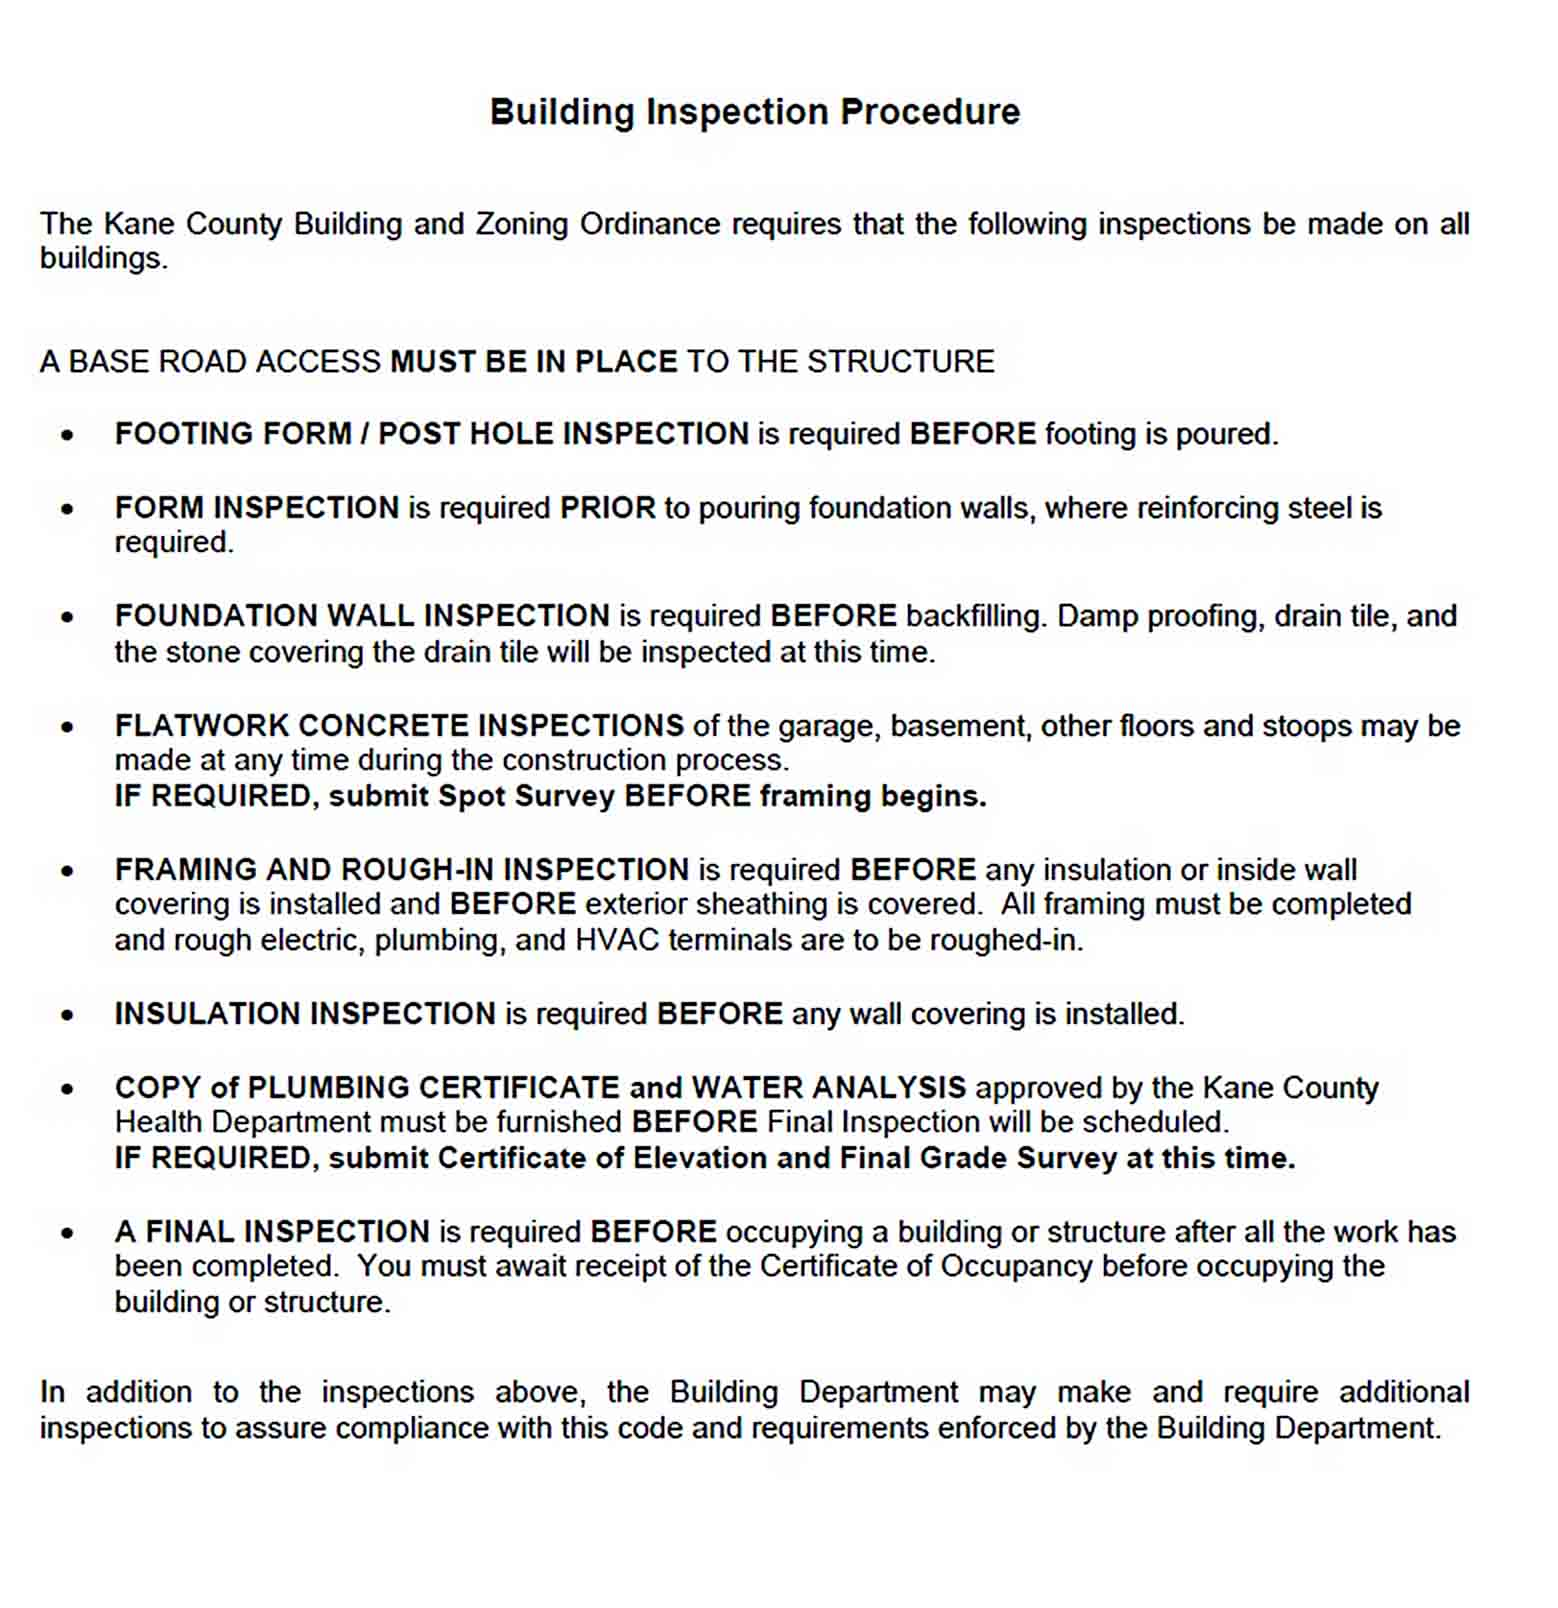 Templates buildinginspection4